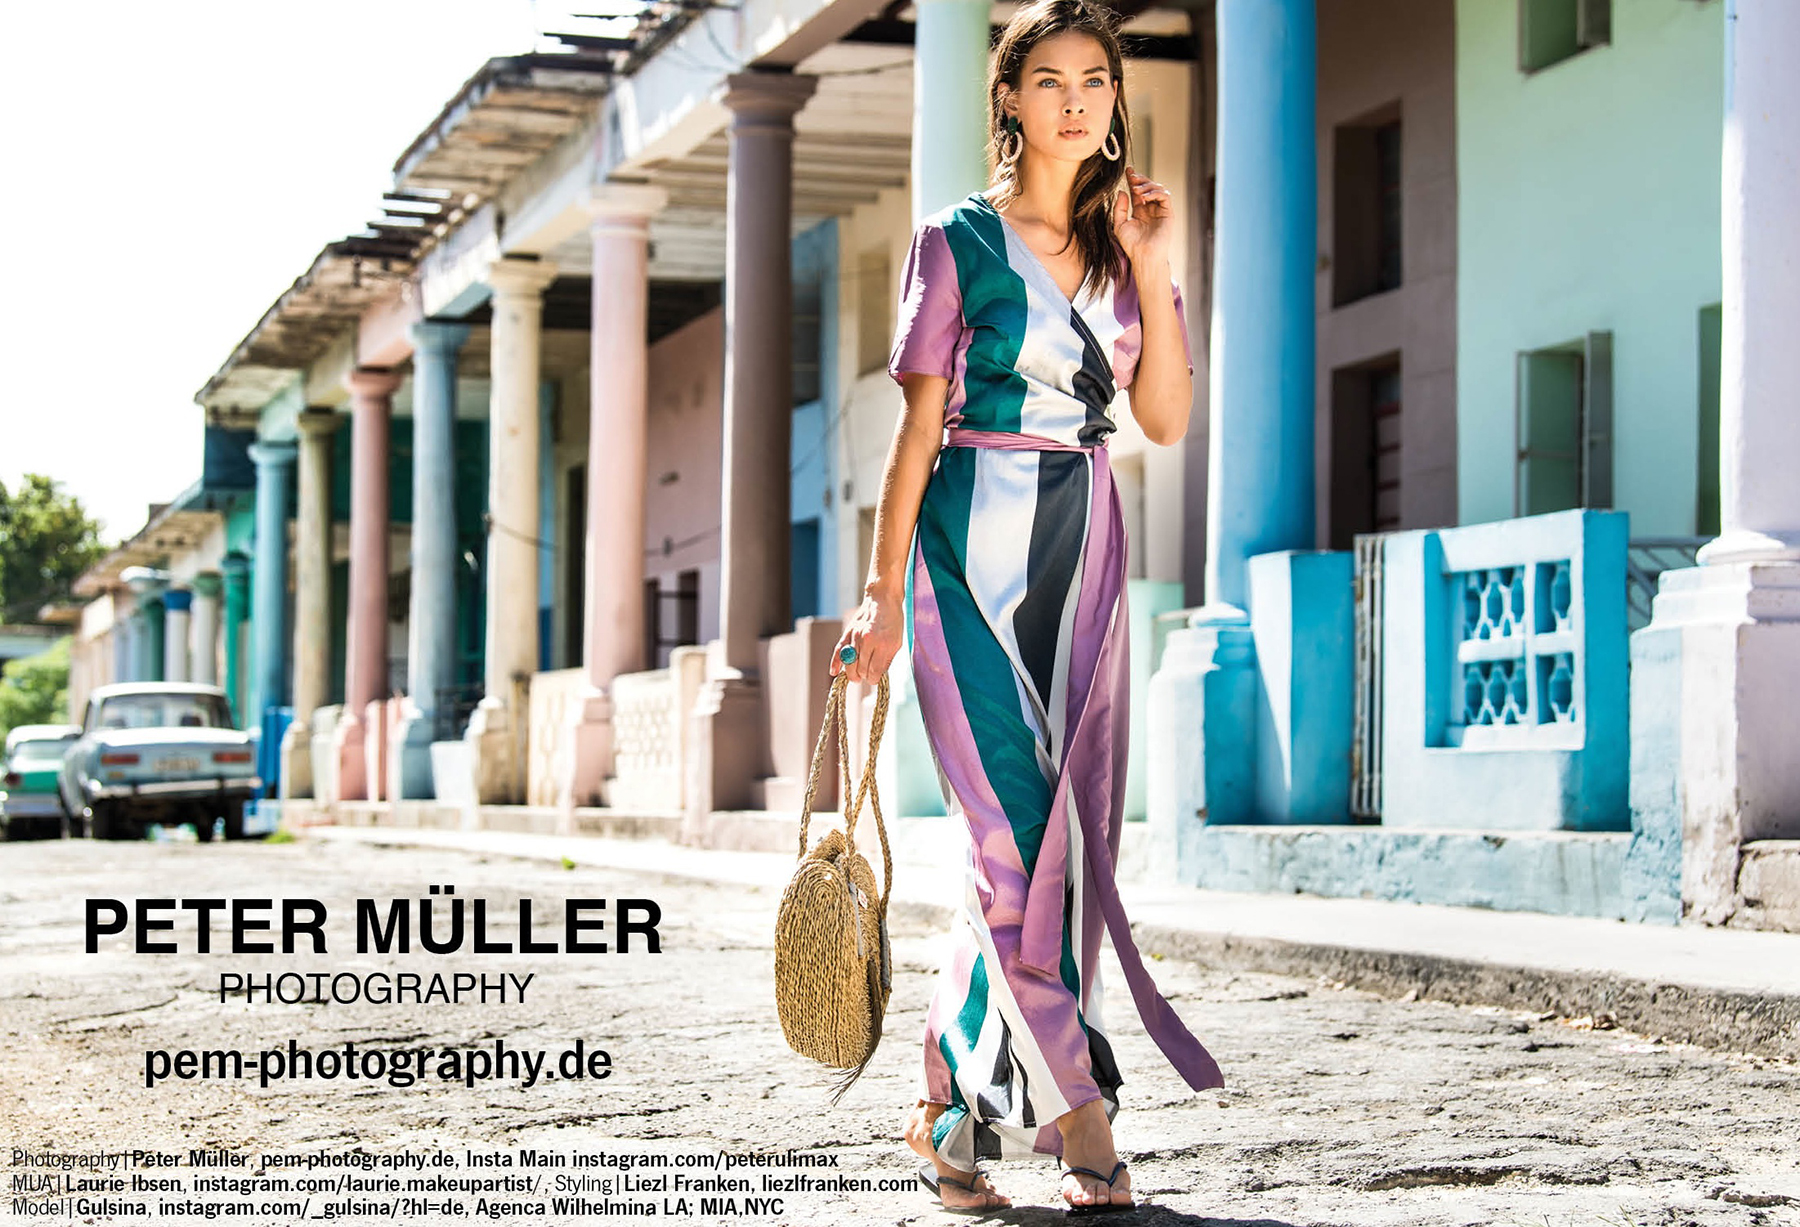 Peter-Muller-Photography-Ad.jpg